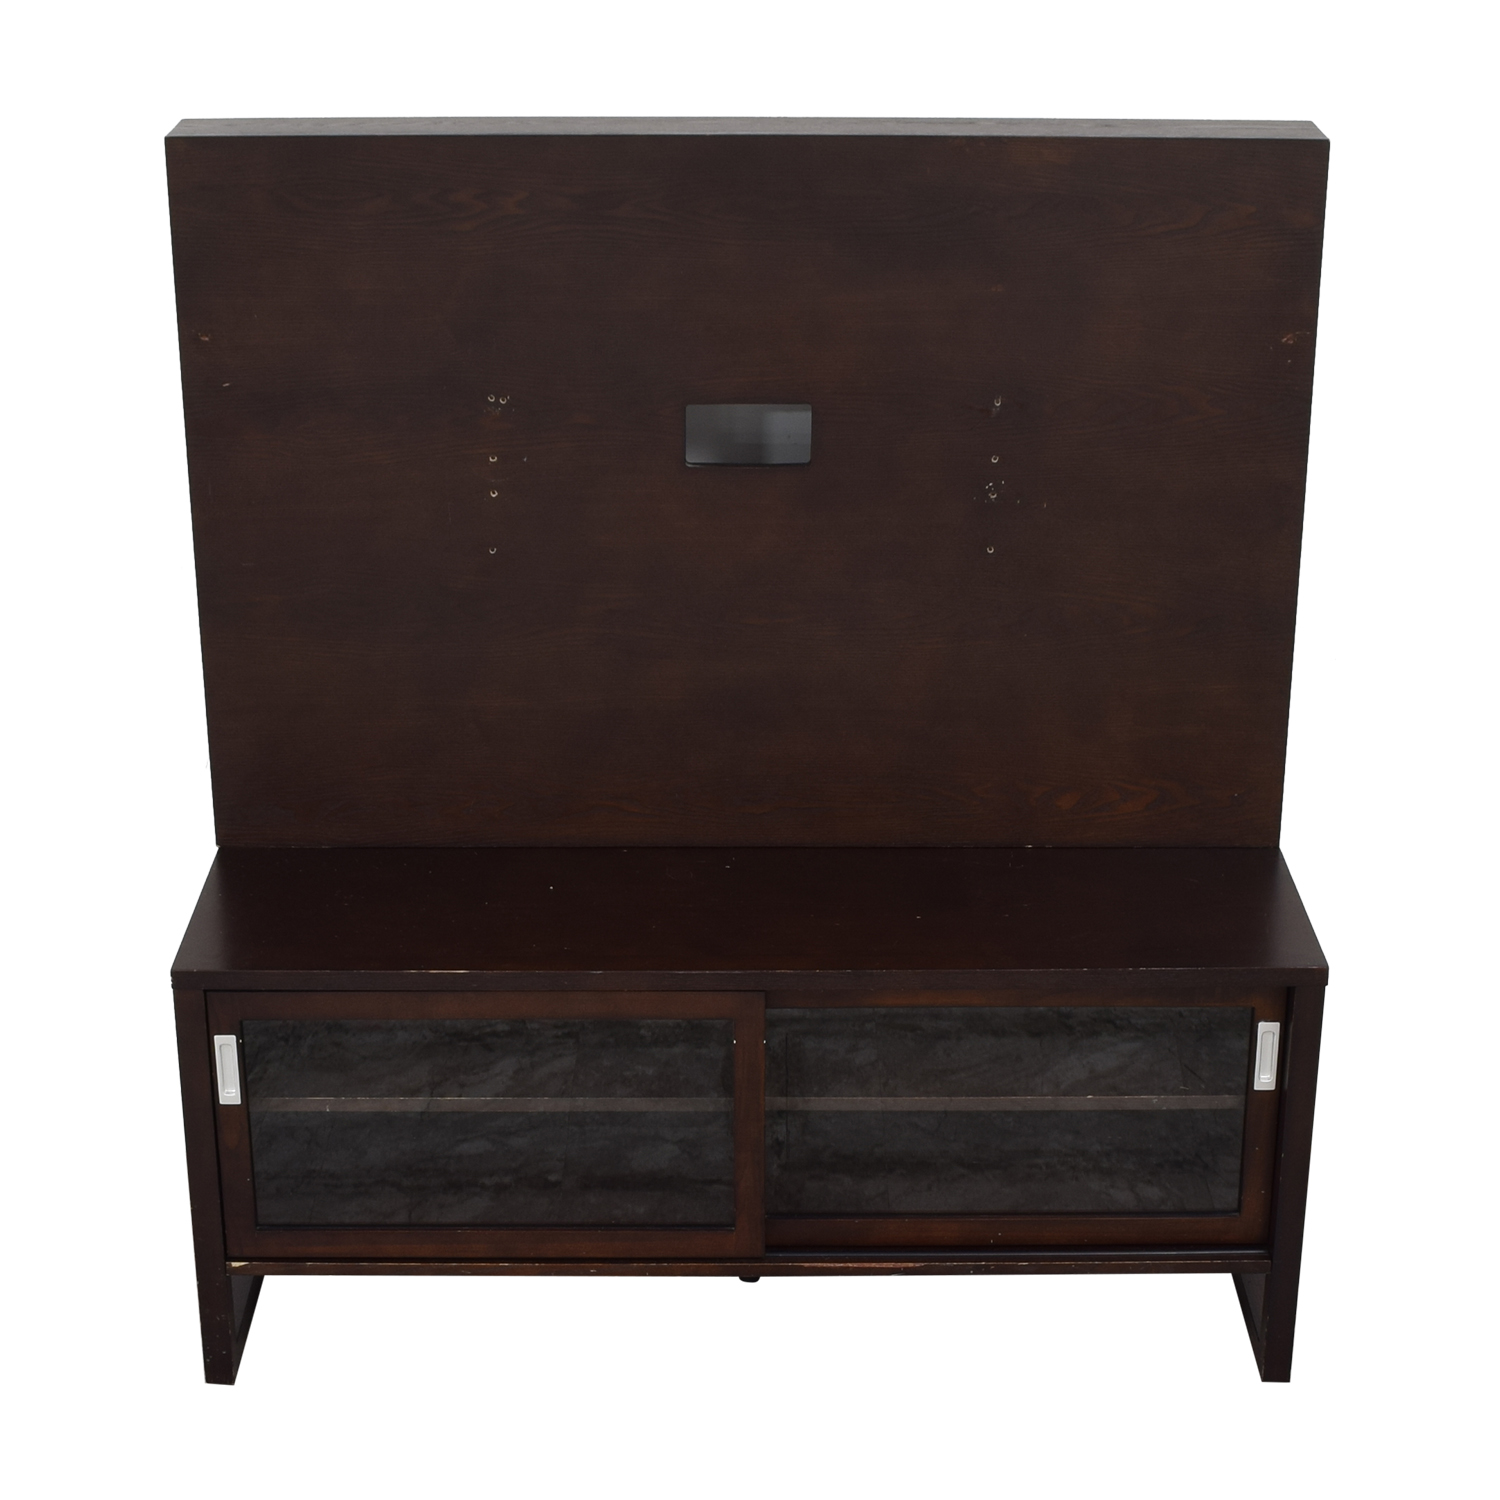 Crate & Barrel Crate & Barrel Entertainment Console with Back Panel pa